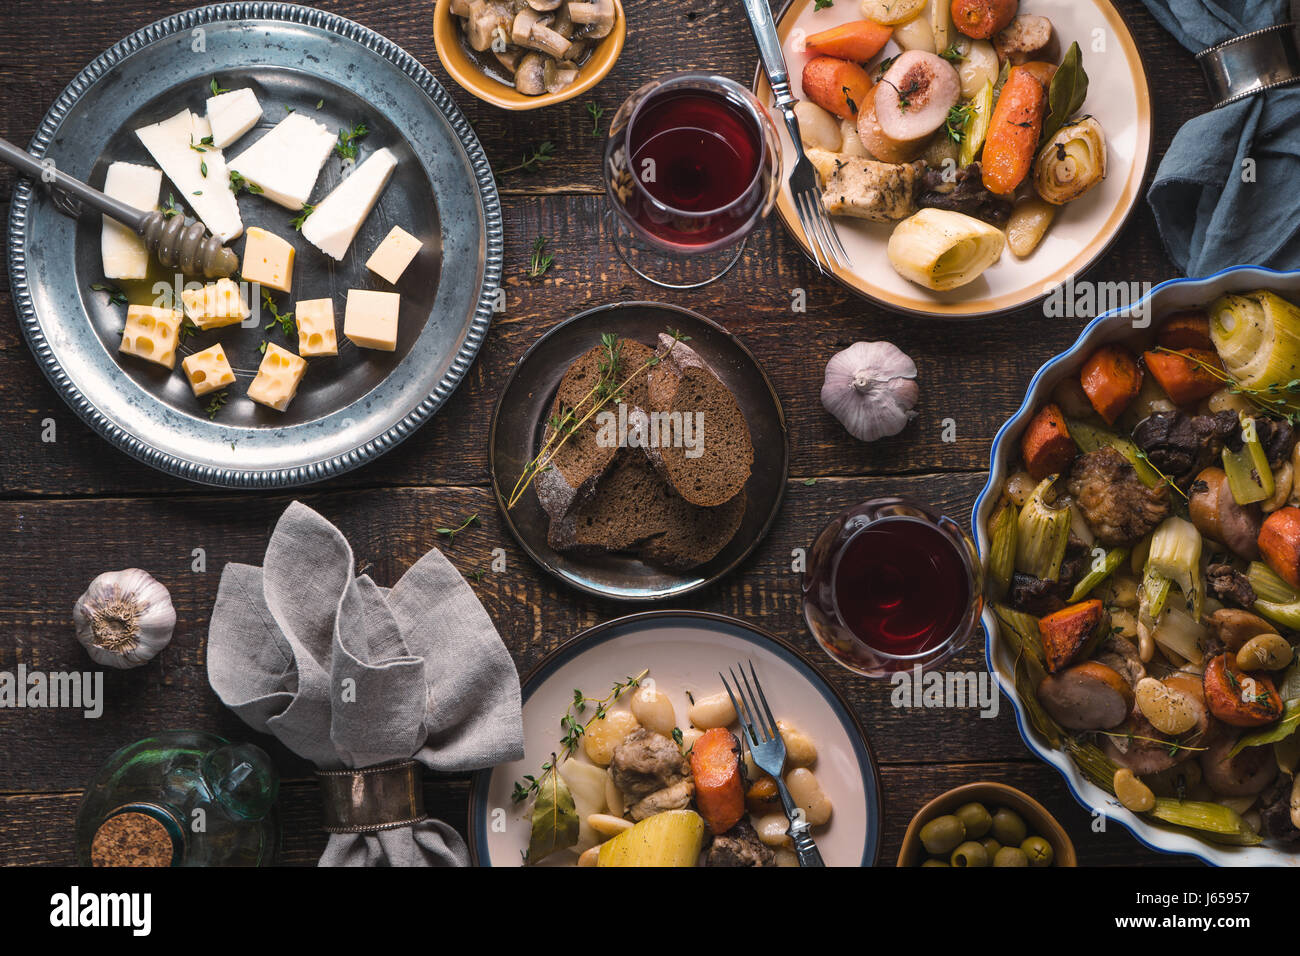 Feast with kasul, cheese, bread, olives and wine - Stock Image